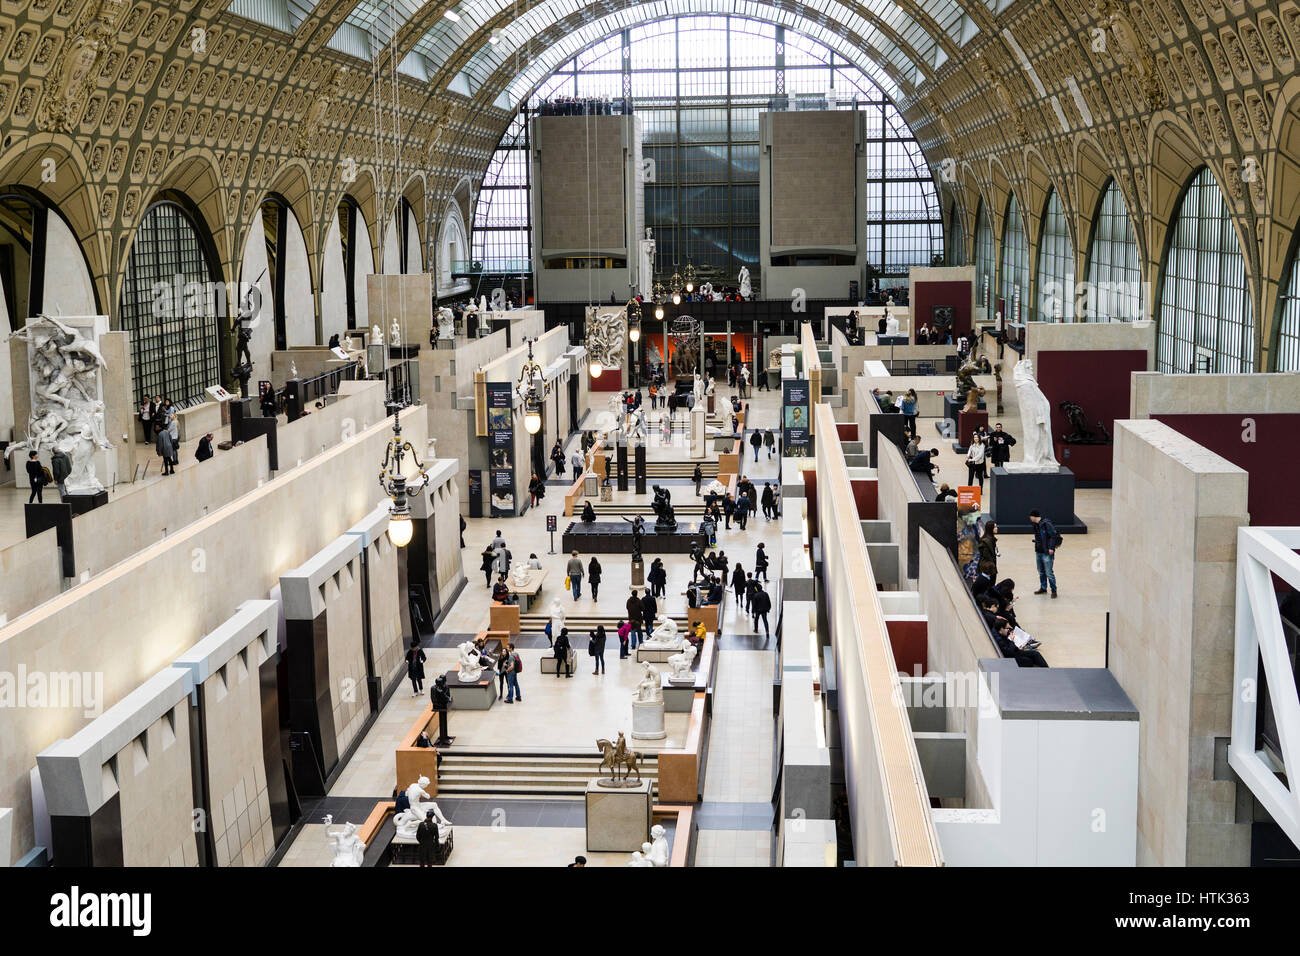 Main Hall of the Musée d'Orsay, Paris, France. - Stock Image